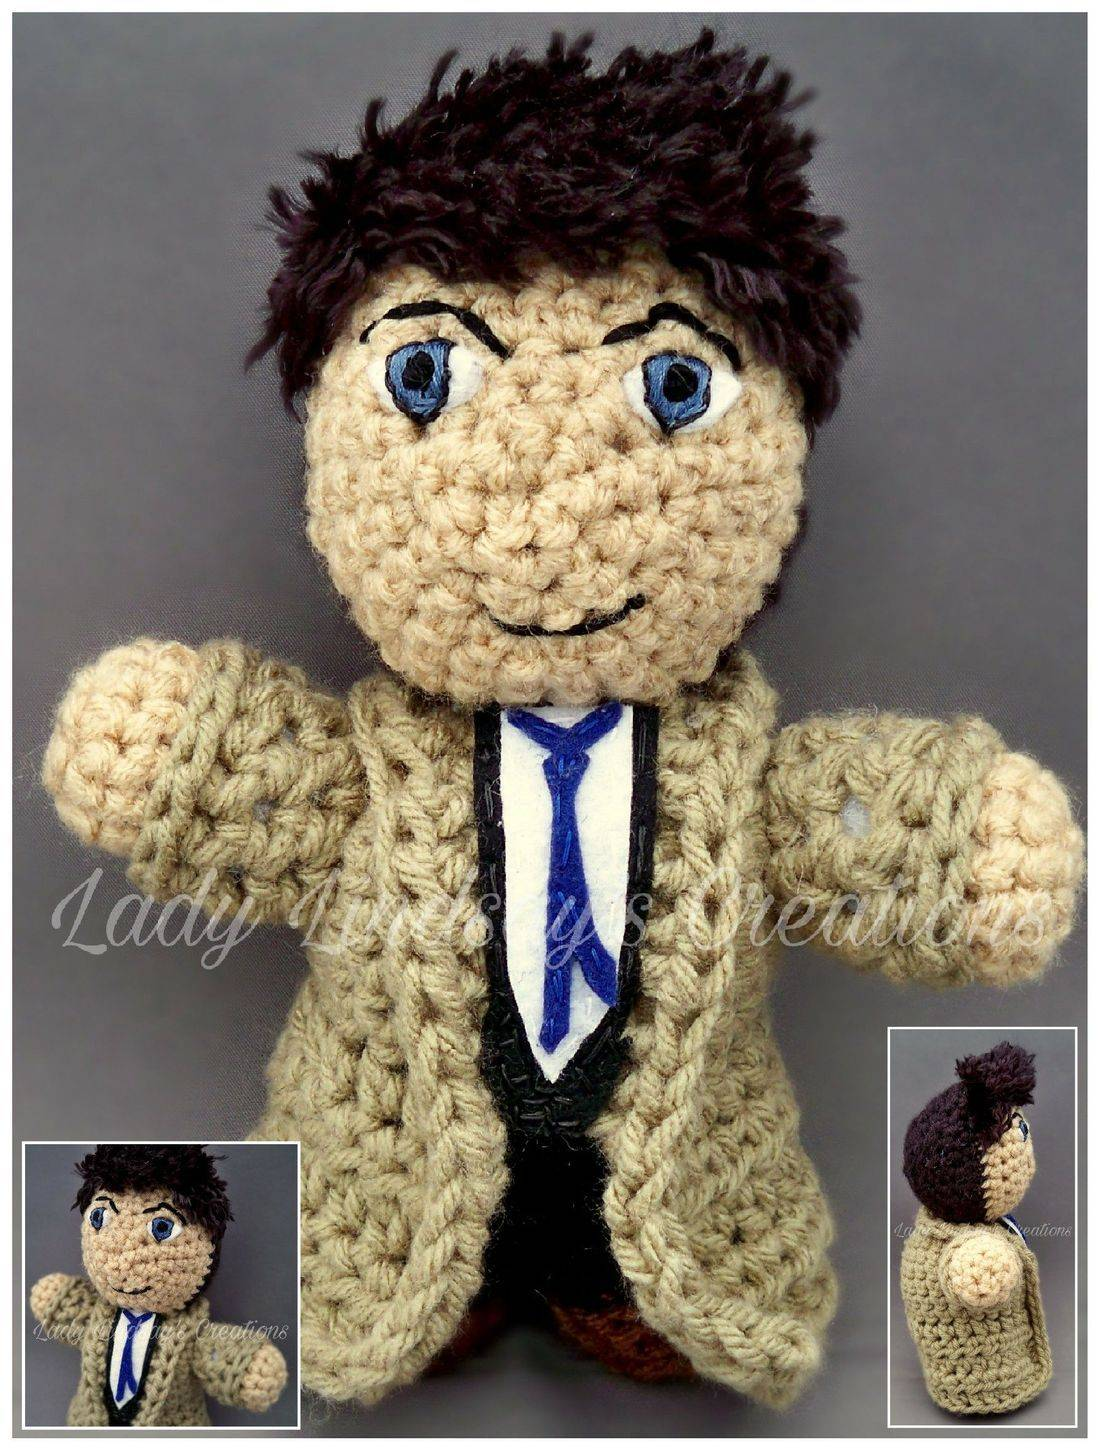 Archangel, Dean, Misha Collins, Supernatural, CW, Sam, Castiel, Amigurumi, Plush, Crochet, handmade, anime, manga, comicbook, nerd, geek, Otaku, superwholock, Etsy, ShopSmall